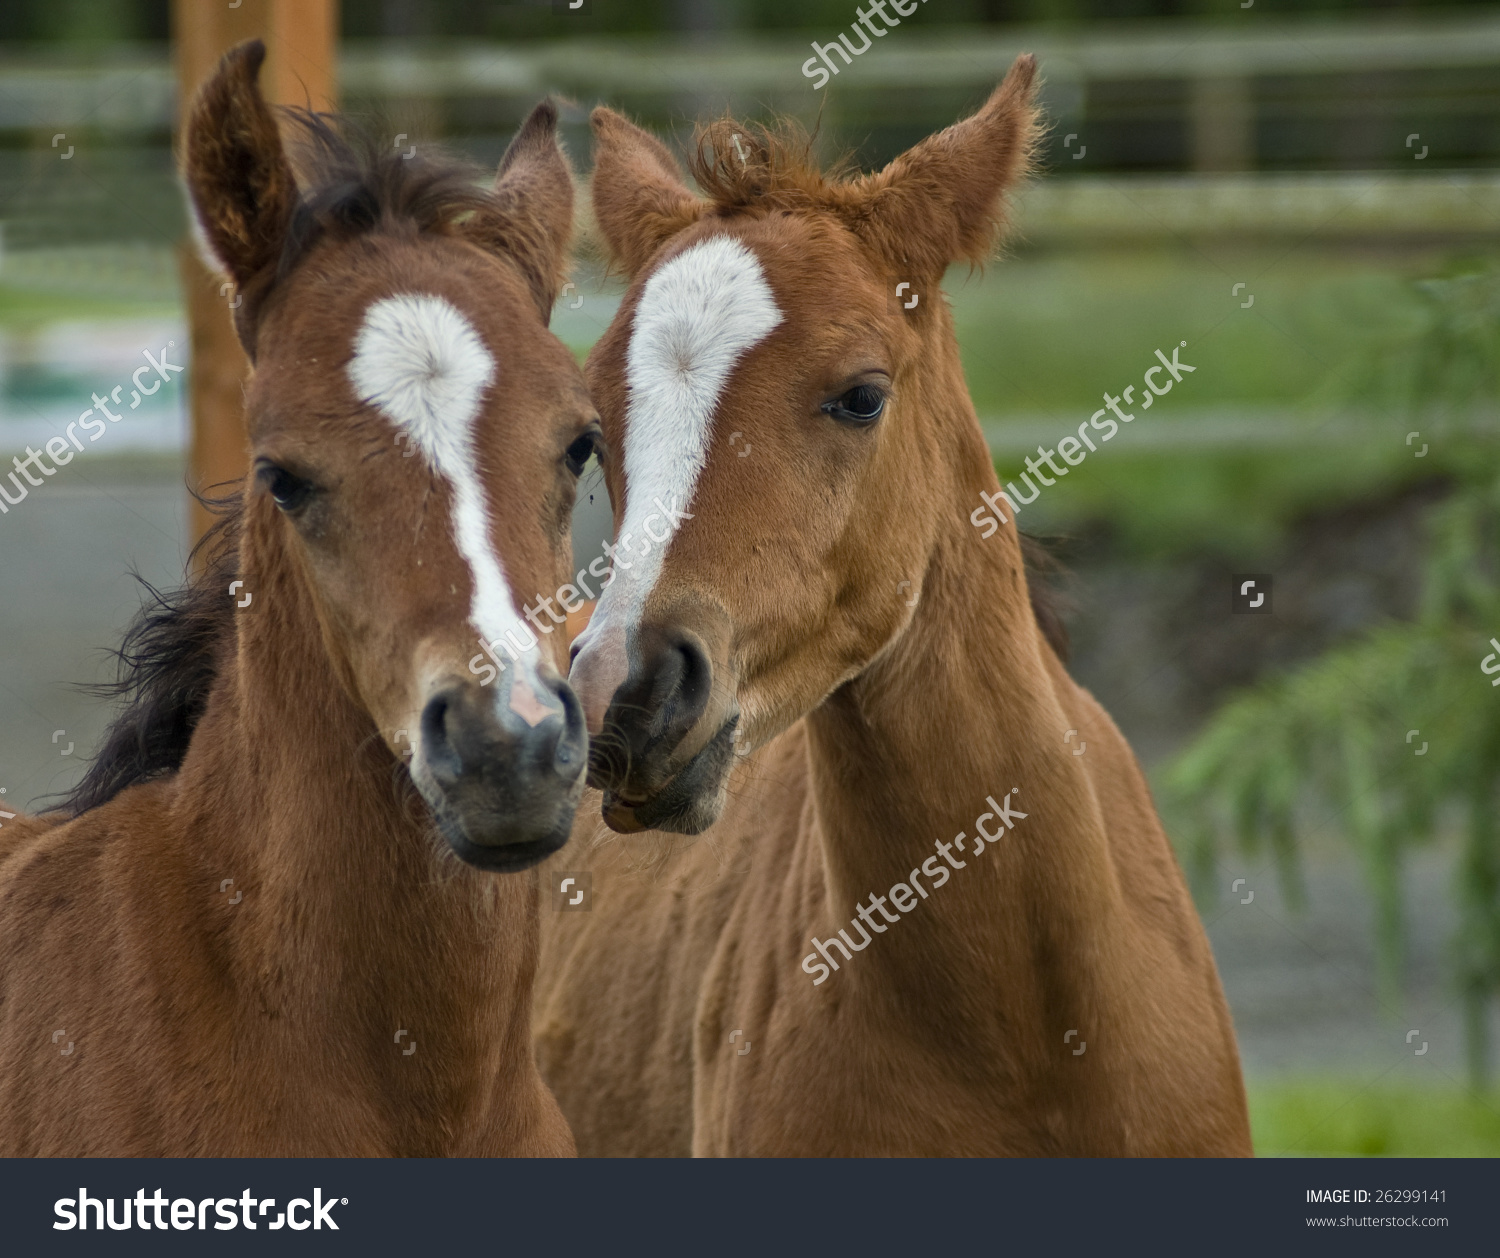 Infant foal clipart #12